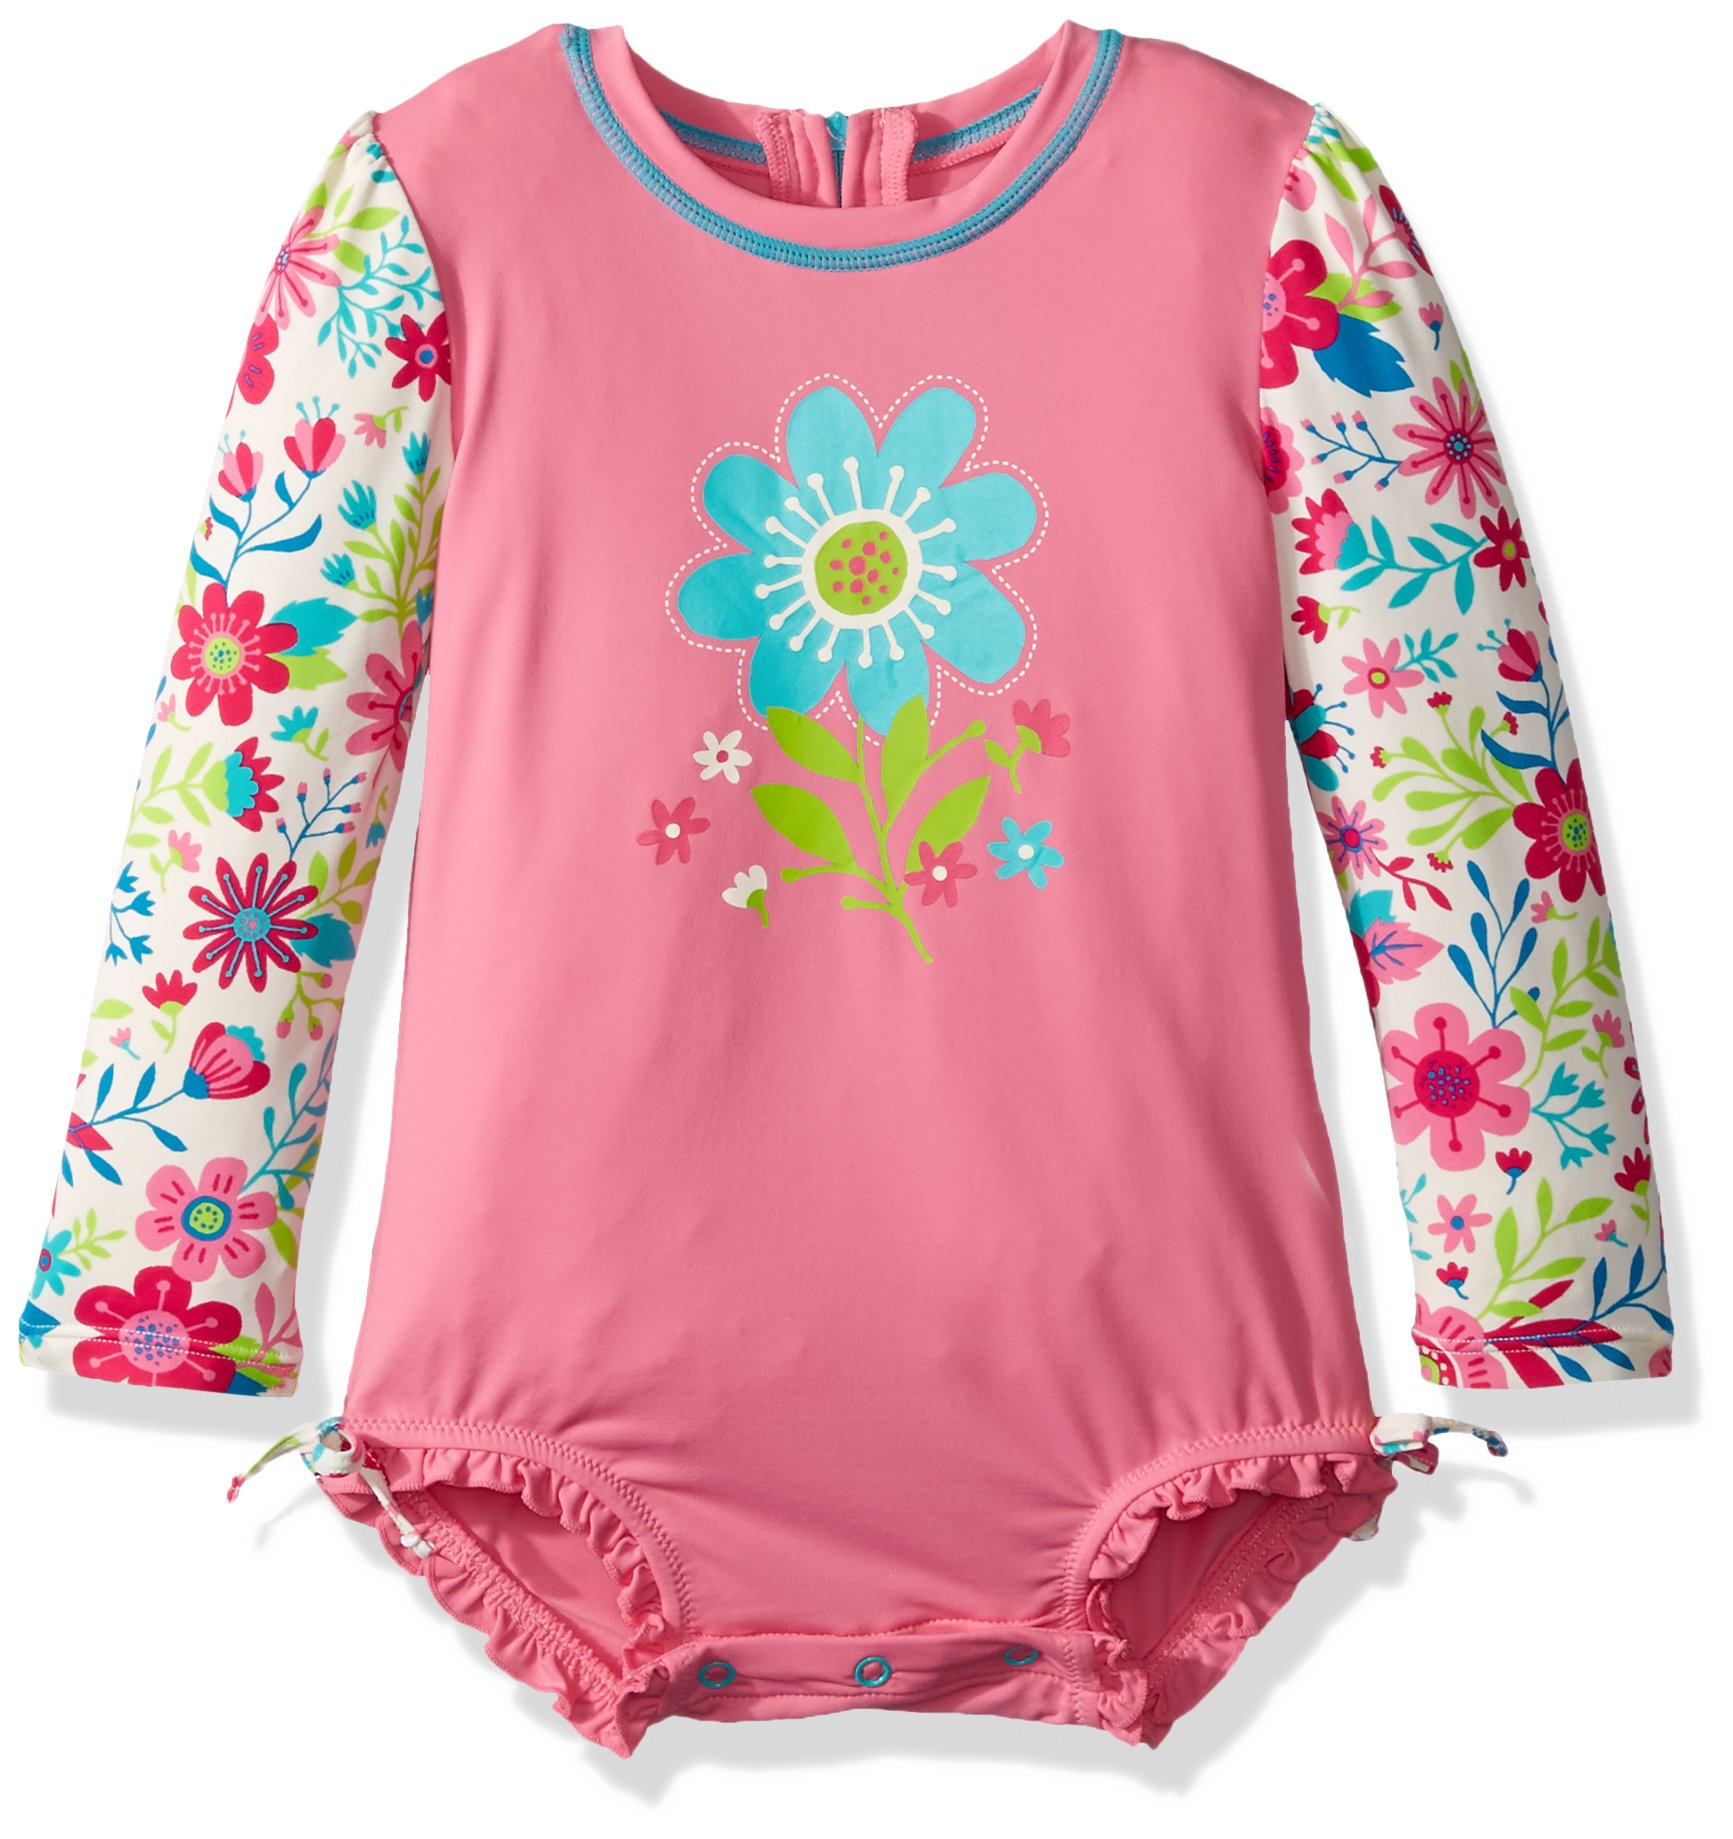 Hatley Girls' Baby Rash Guard, Wall Paper Flowers, 6-9M